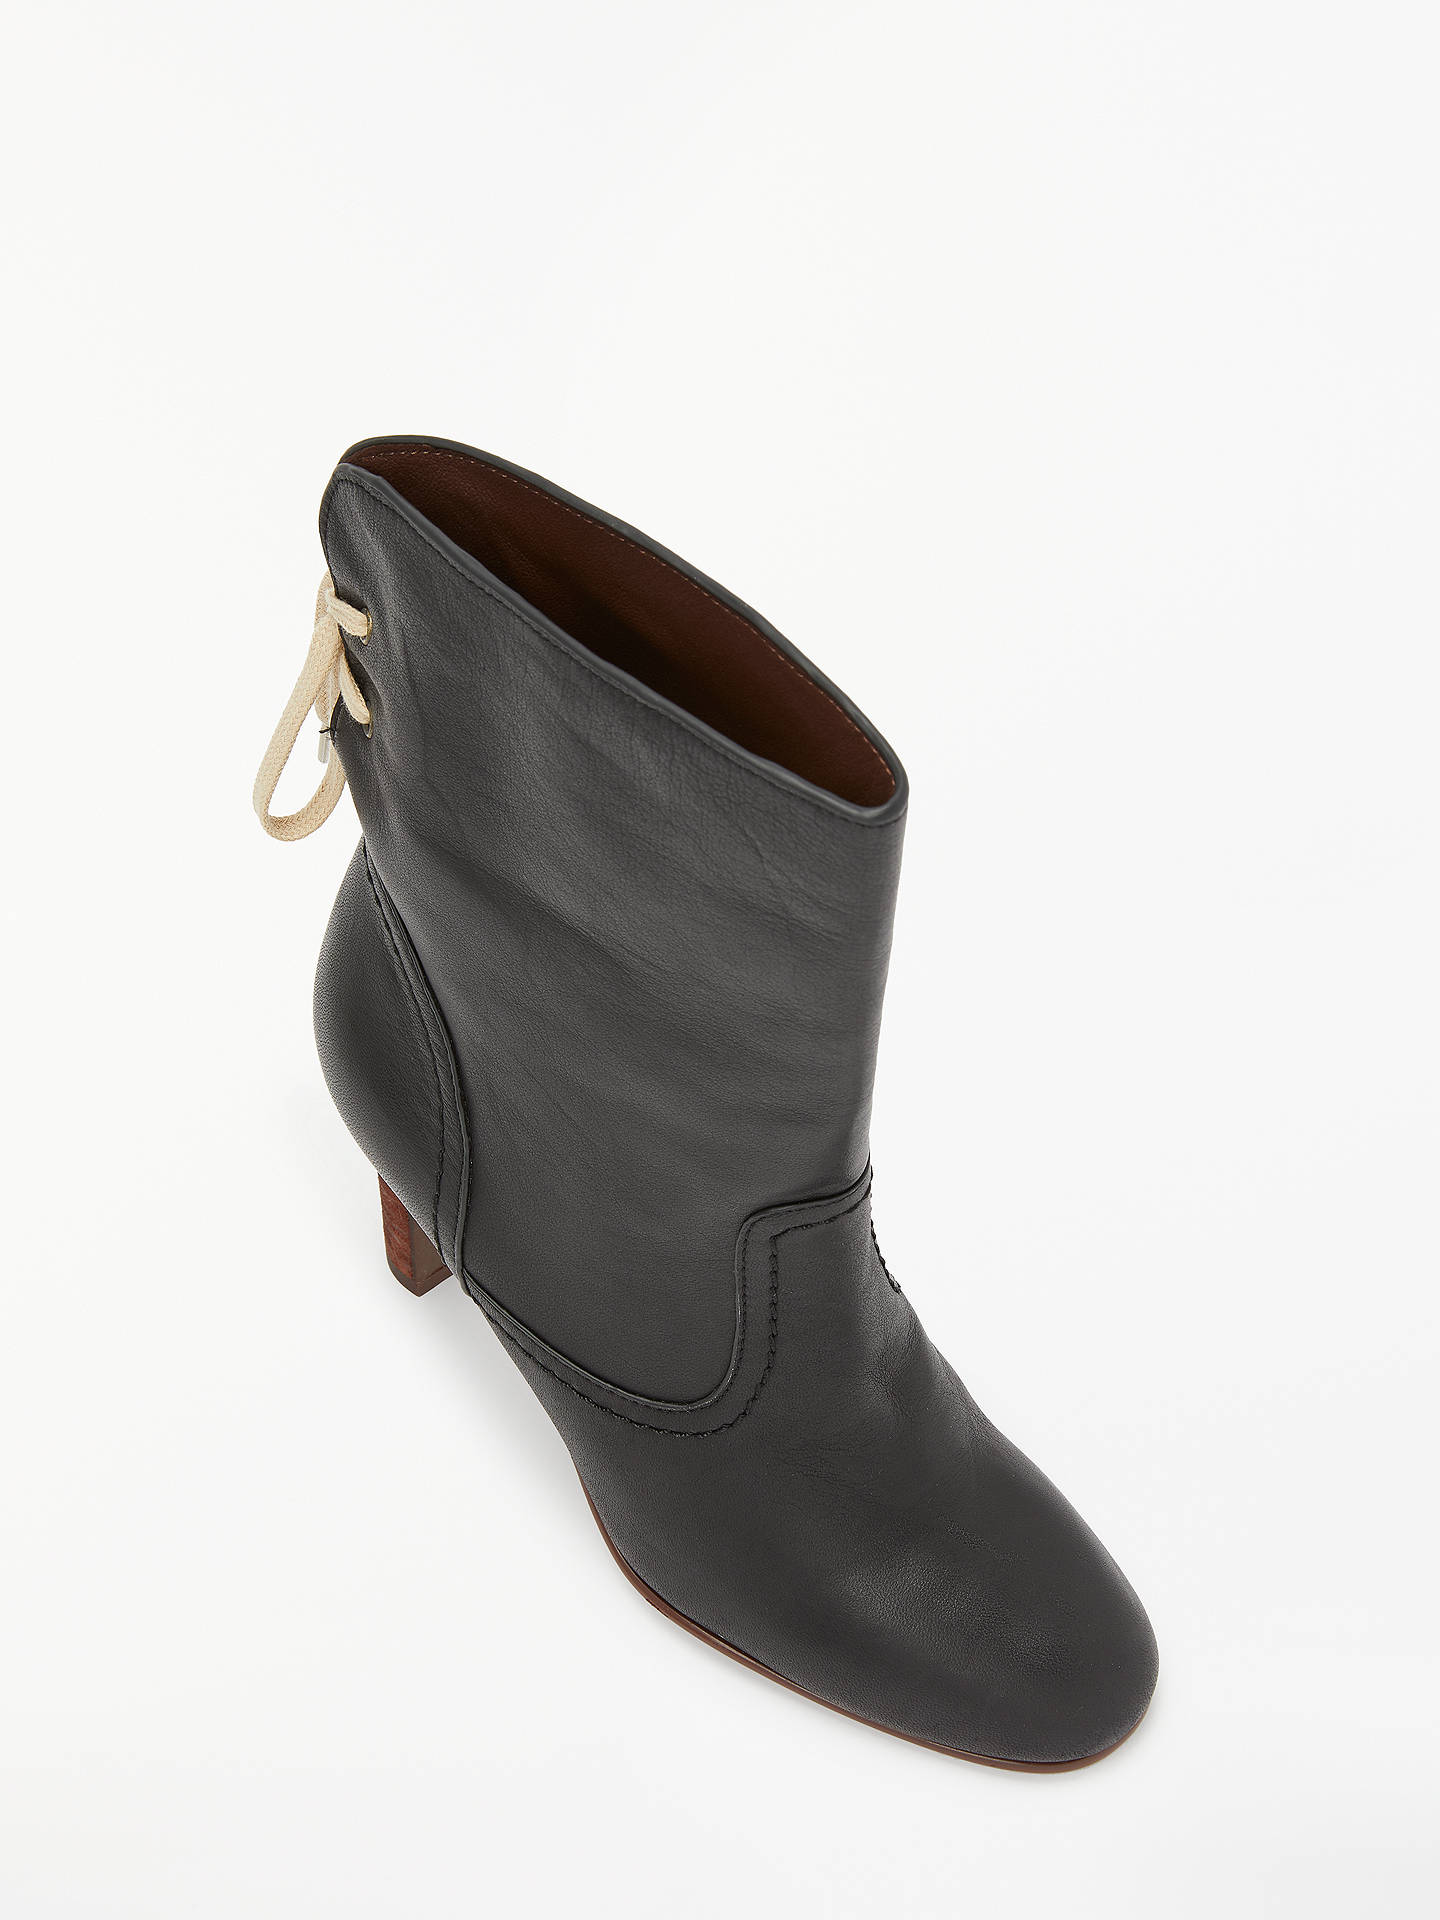 BuySee By Chloé High Block Heeled Ankle Boots, Black Leather, 4 Online at johnlewis.com